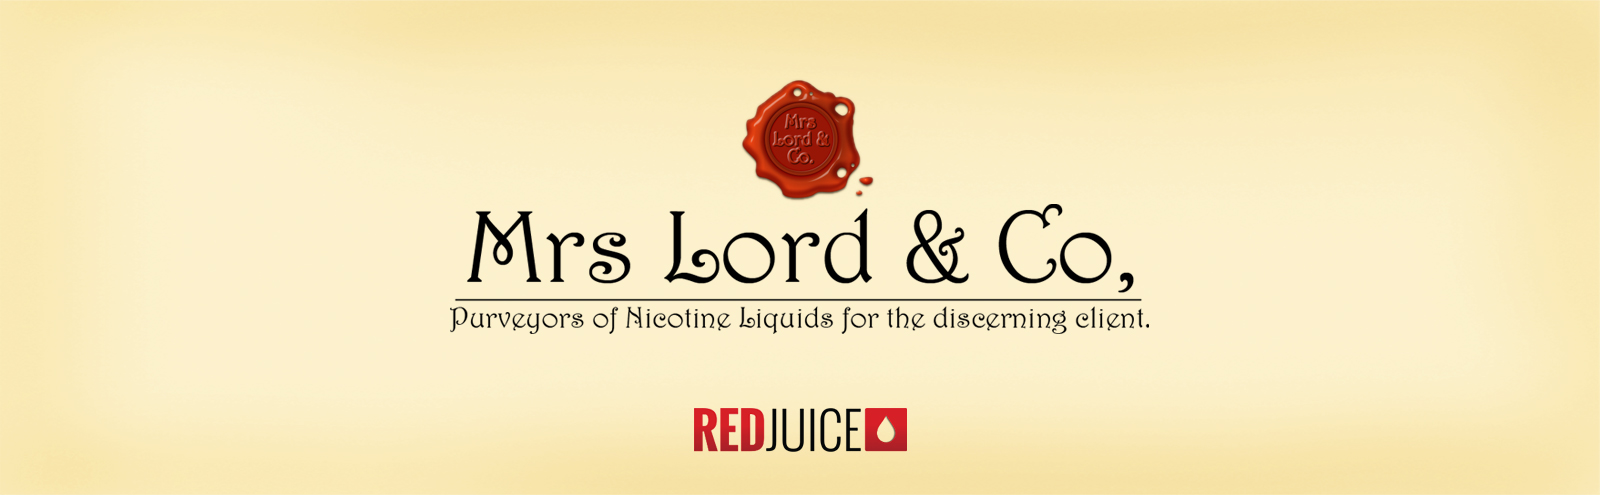 Mrs Lord & Co Banner